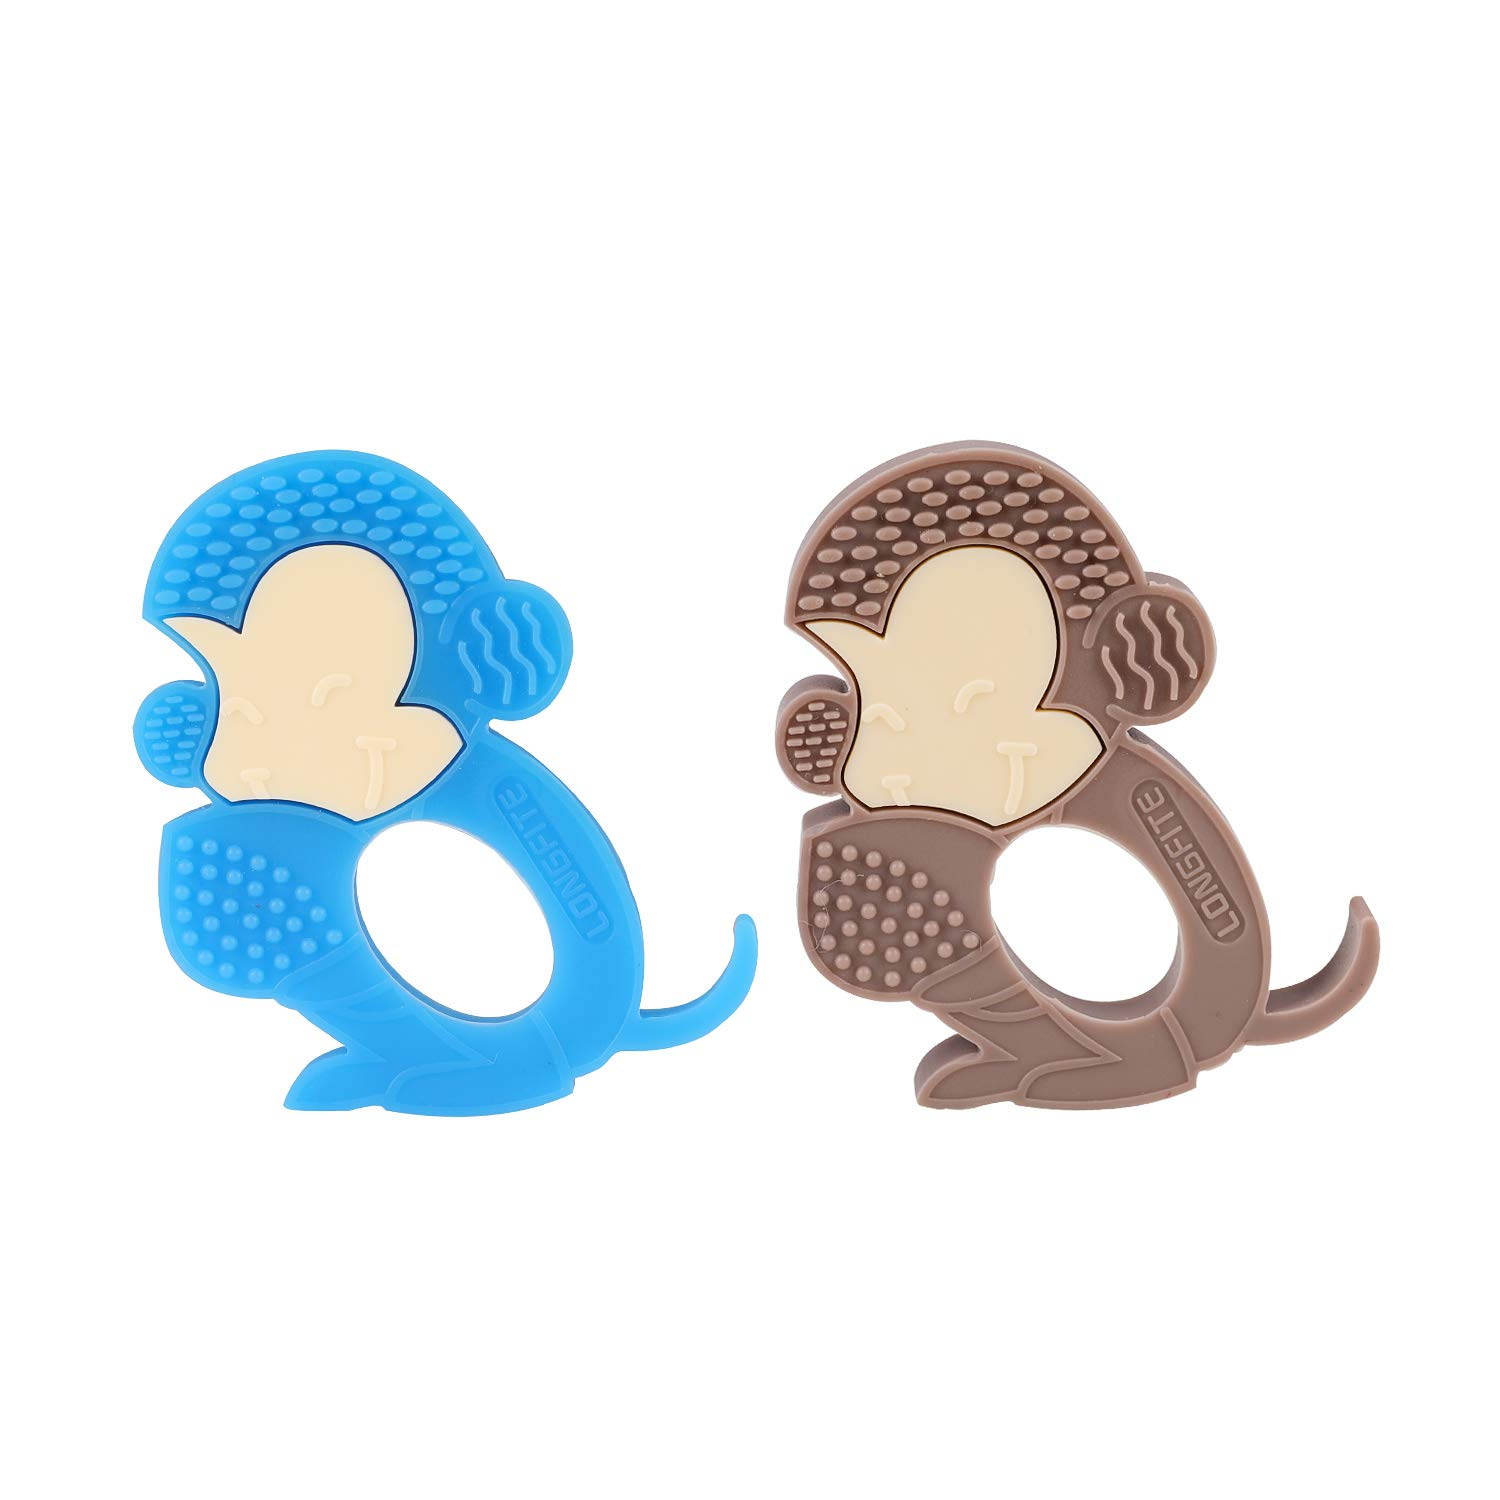 Pack of 2 Longfite Baby Teething Toys and Soothing Teether Soft Silicone Monkey Infant Teething Set